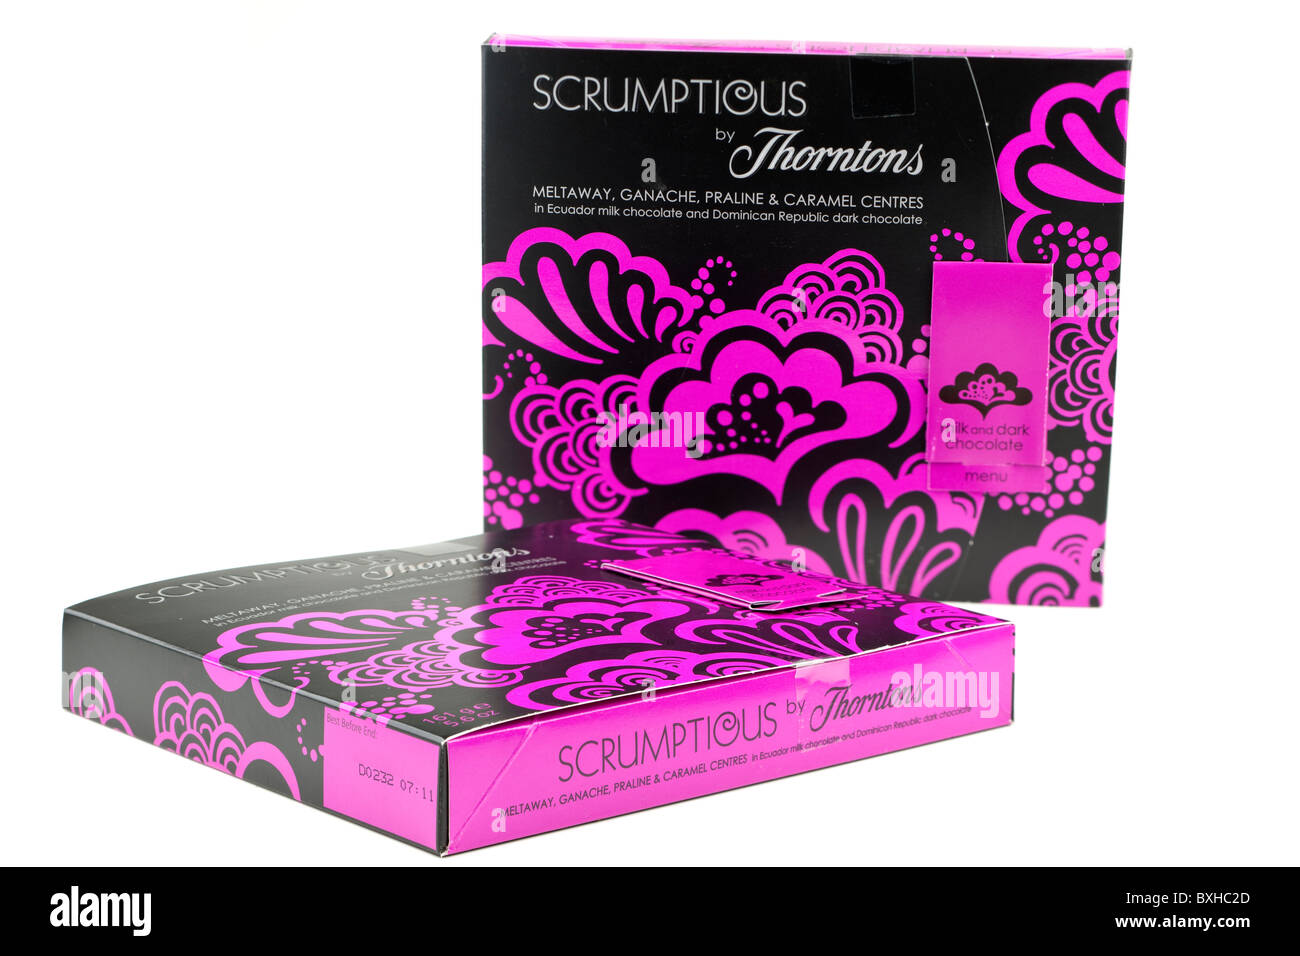 Two boxes of Scrumptious chocolates by Thorntons - Stock Image